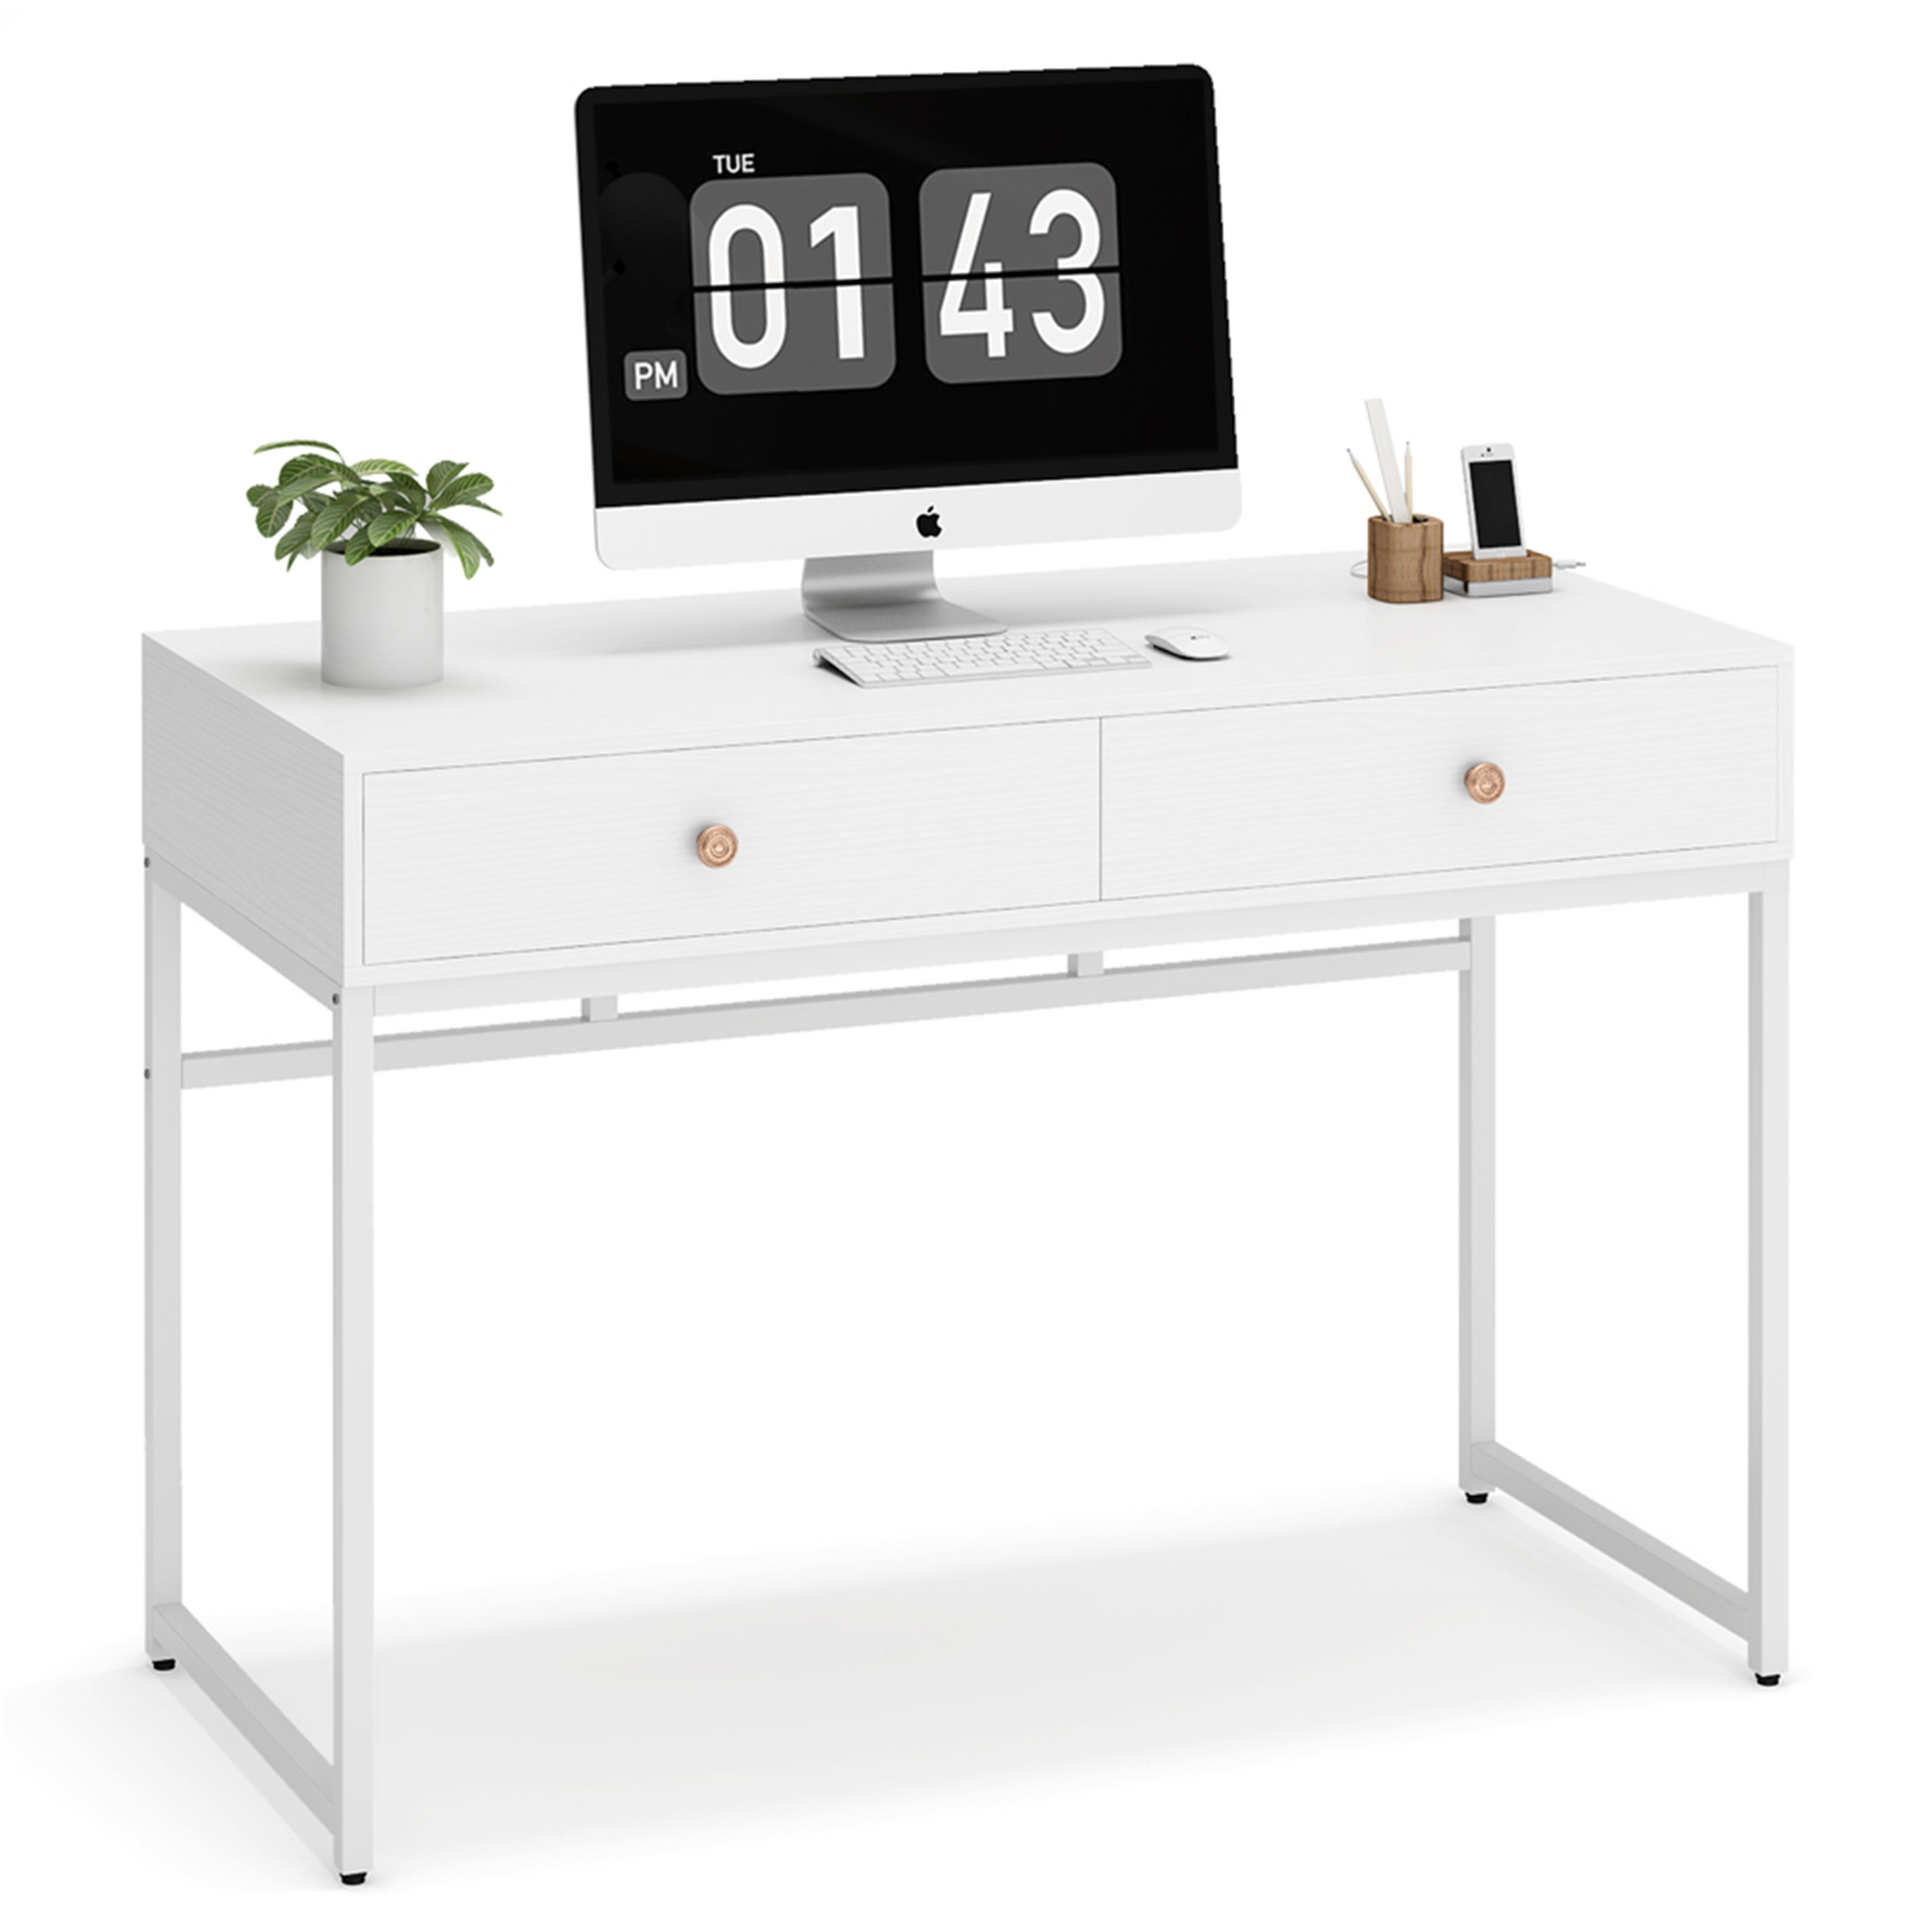 47 Inch Contemporary Computer Desk With 2 Drawers Overstock 31310192